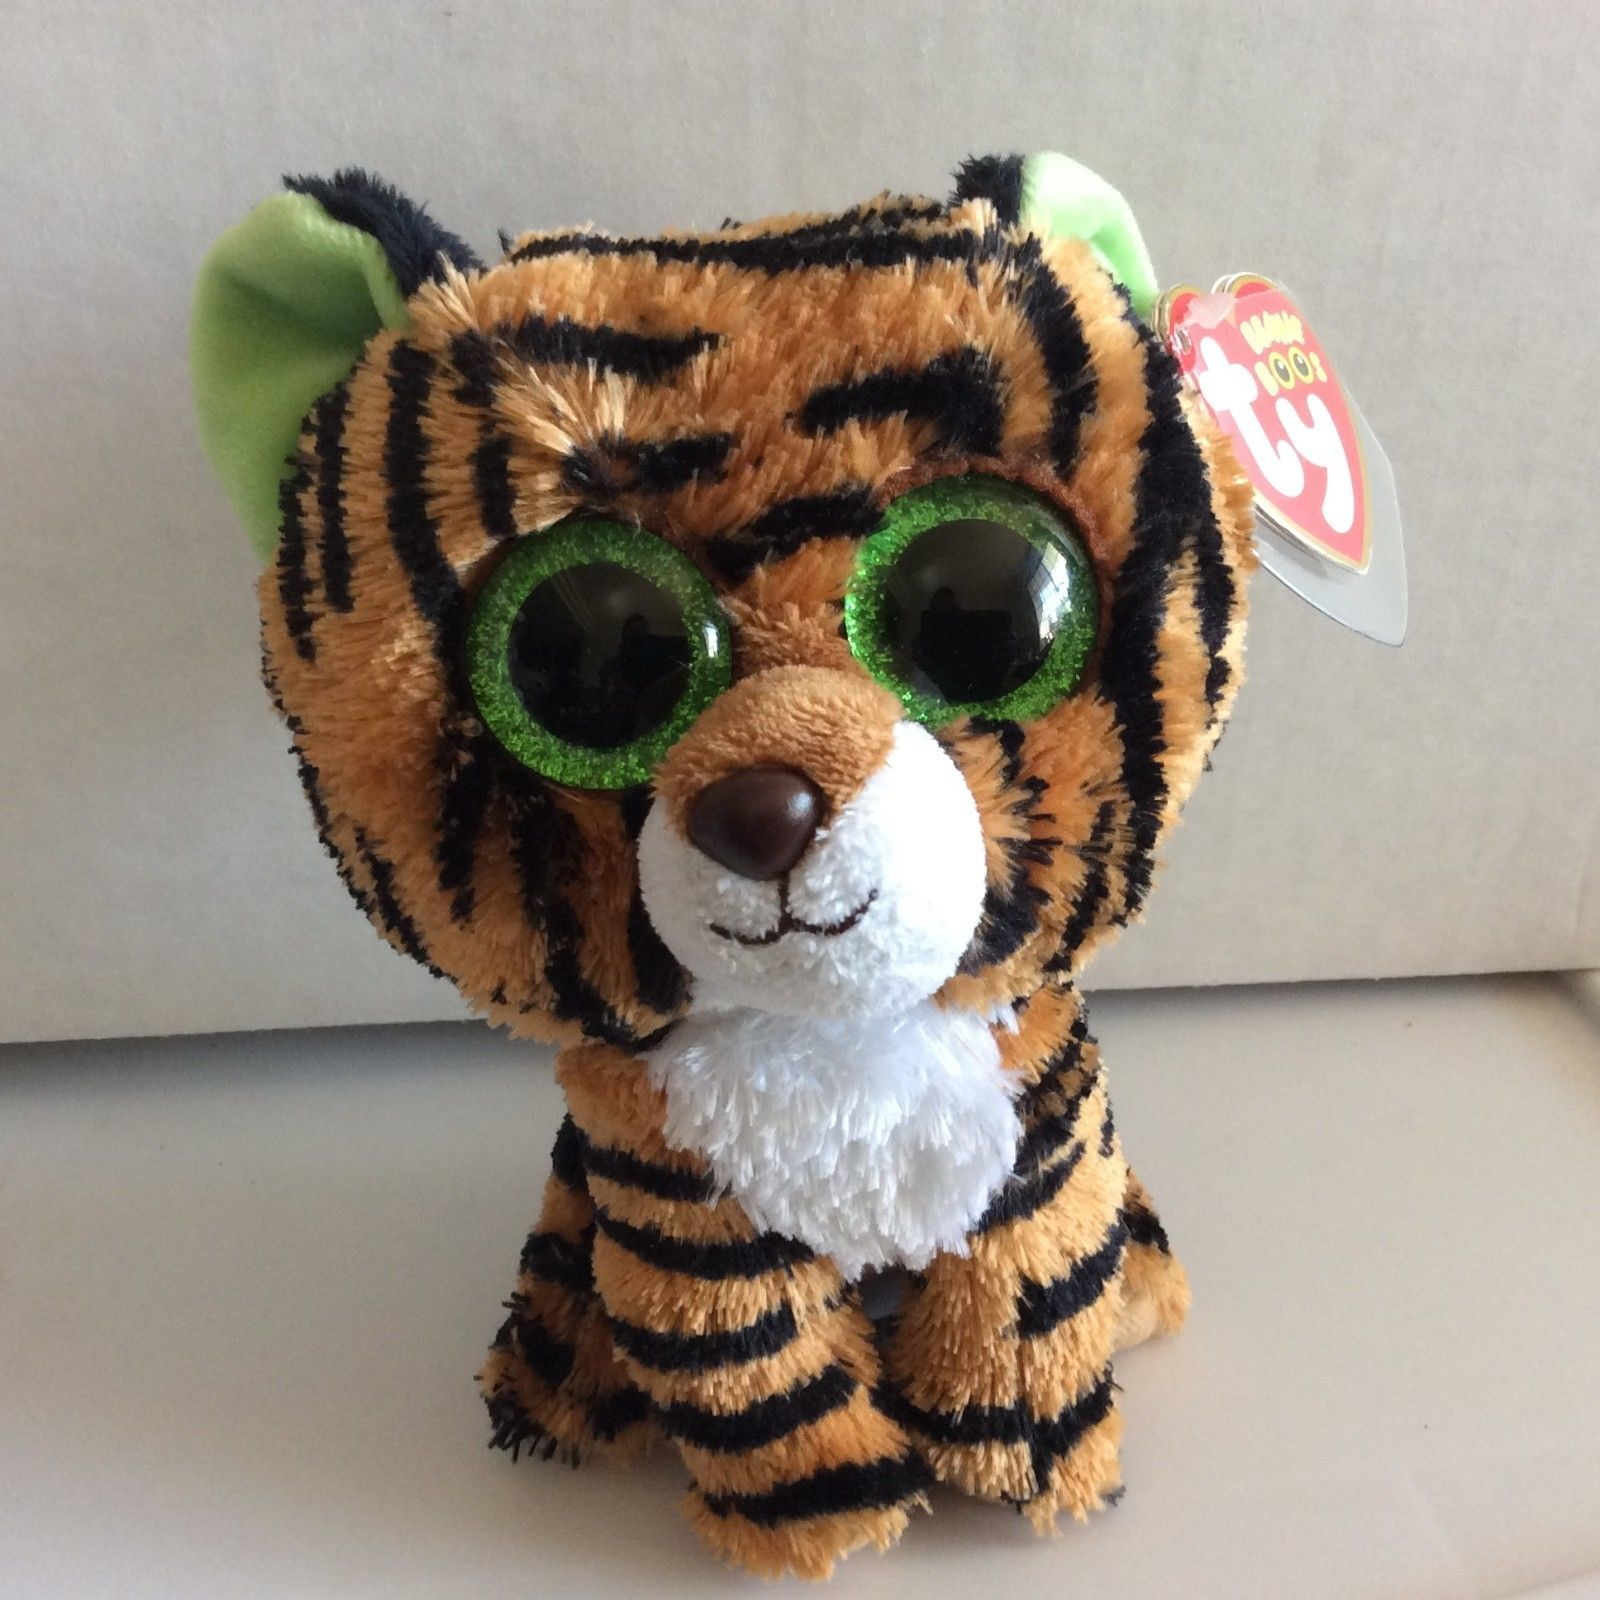 20ca6340930 Current 1628  Ty Beanie Boo Stripes The Tiger Sparkle Eye Version 6 Mwmt -   BUY IT NOW ONLY   23.99 on eBay!